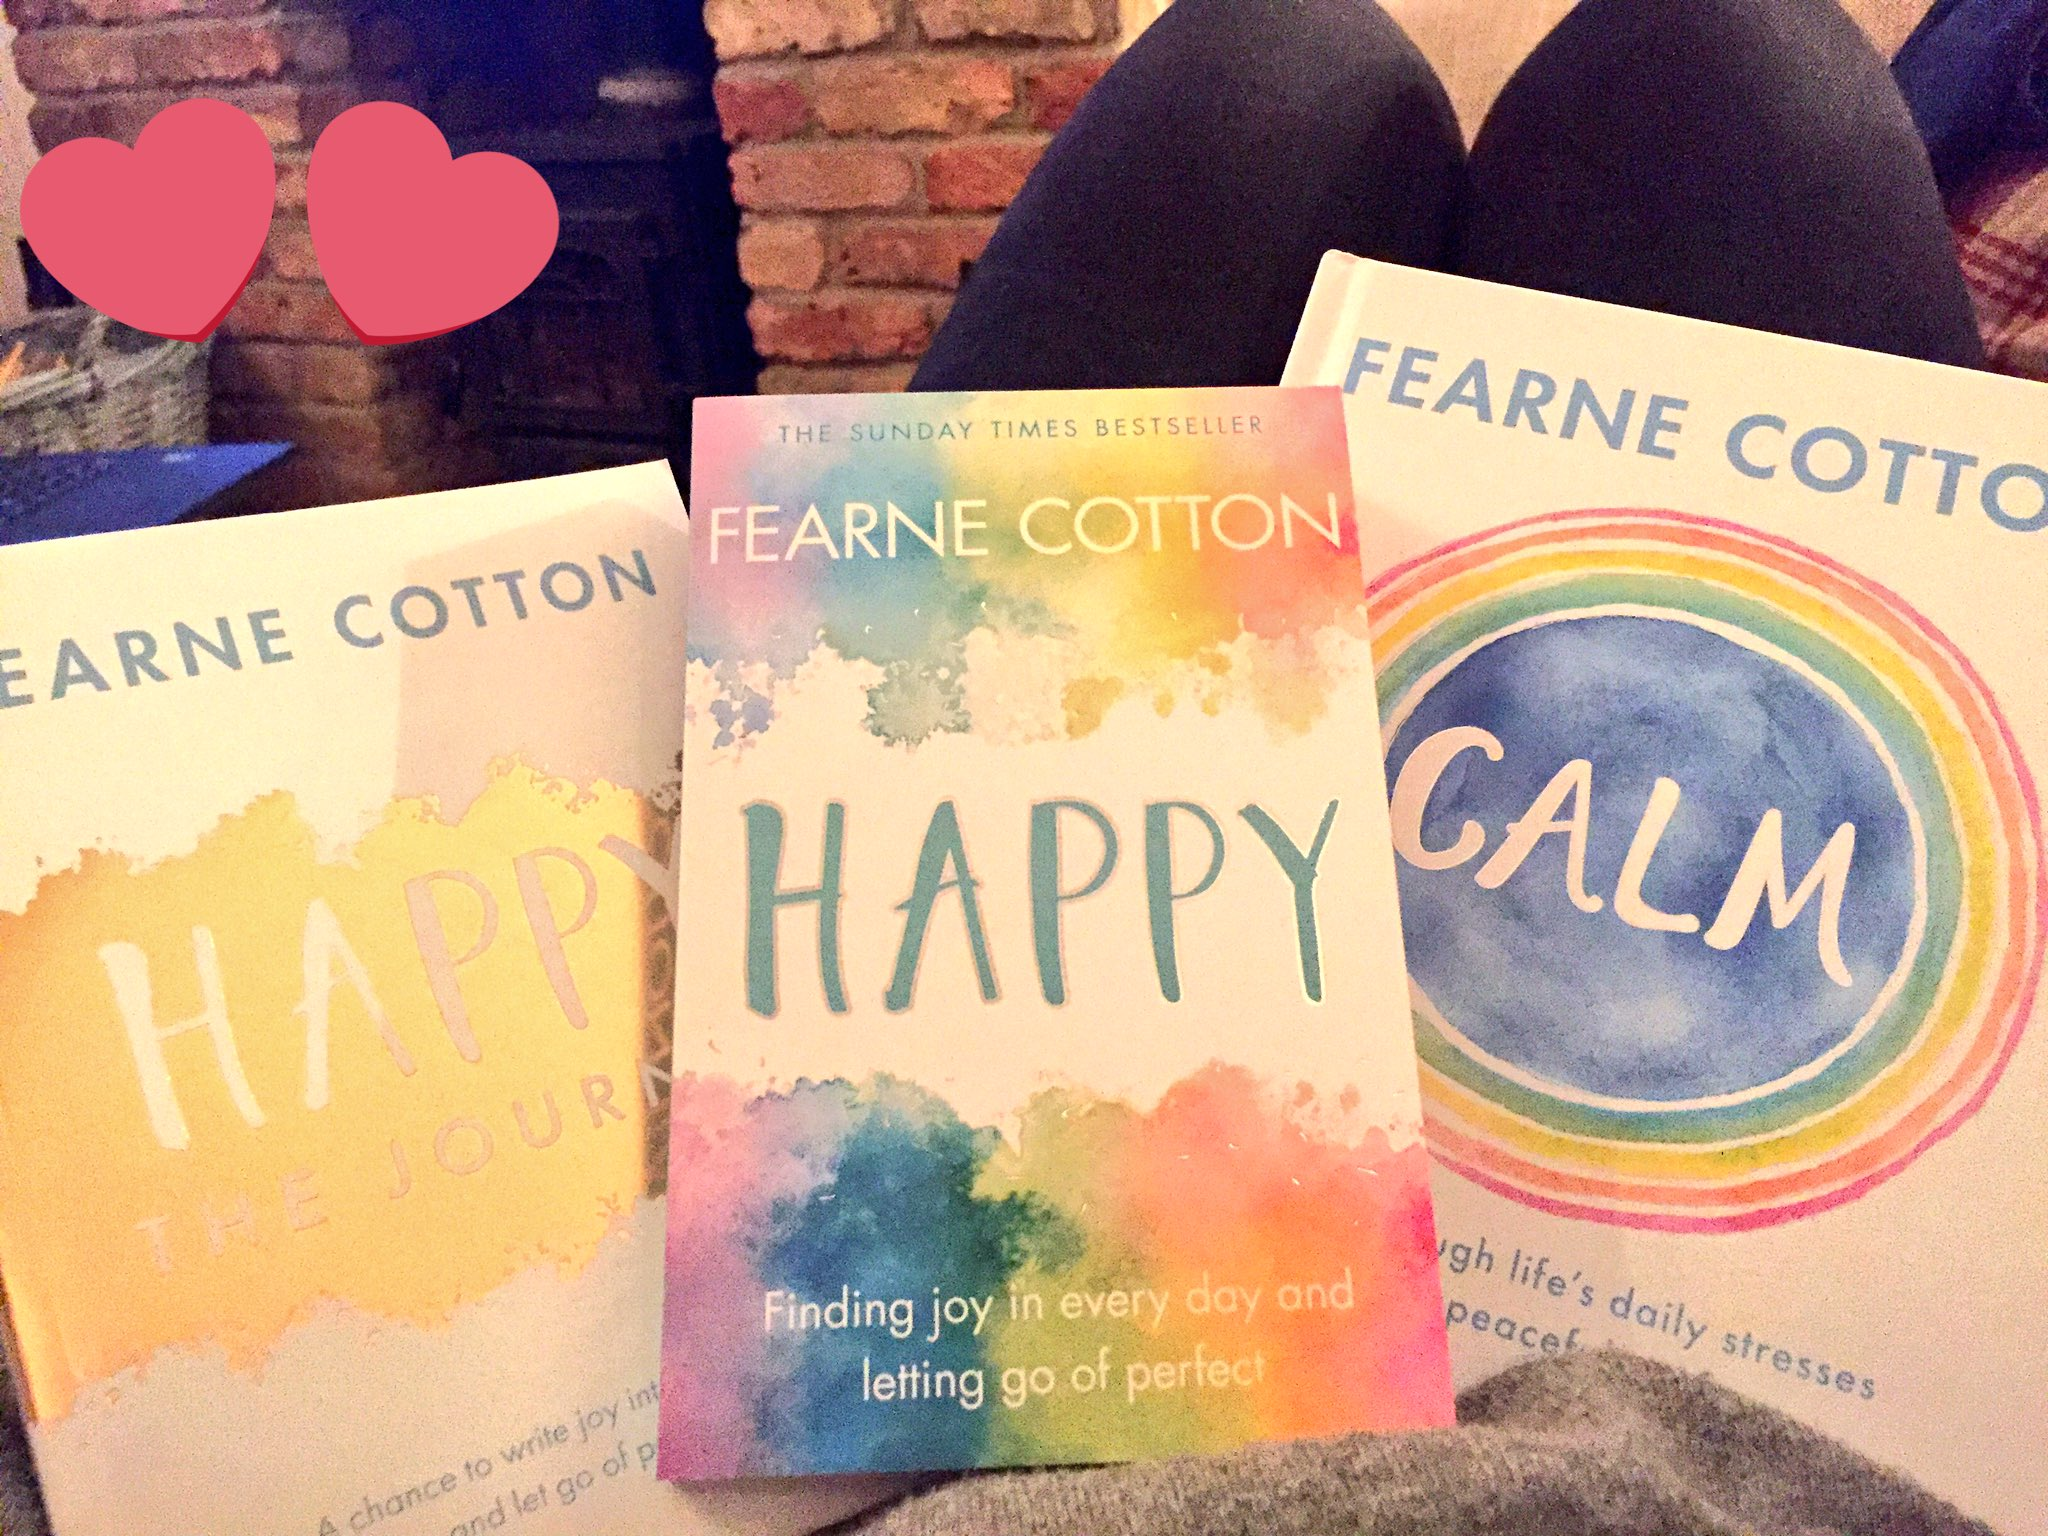 RT @khjudge08: @Fearnecotton So excited about what arrived for me today! Can't wait to get started! Thank you https://t.co/zHel7MtsI3